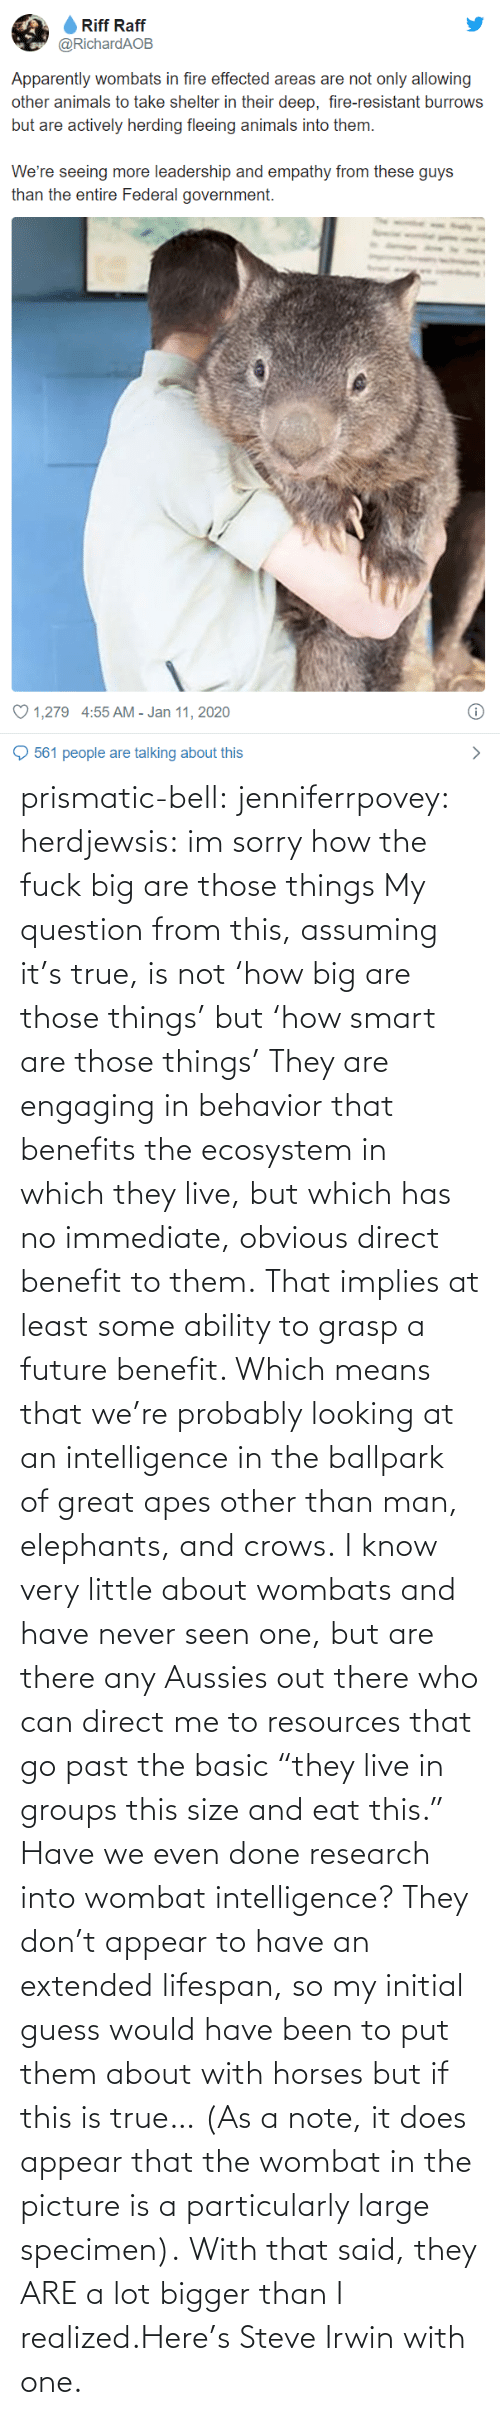 "this is: prismatic-bell:  jenniferrpovey: herdjewsis: im sorry how the fuck big are those things My question from this, assuming it's true, is not 'how big are those things' but 'how smart are those things' They are engaging in behavior that benefits the ecosystem in which they live, but which has no immediate, obvious direct benefit to them. That implies at least some ability to grasp a future benefit. Which means that we're probably looking at an intelligence in the ballpark of great apes other than man, elephants, and crows. I know very little about wombats and have never seen one, but are there any Aussies out there who can direct me to resources that go past the basic ""they live in groups this size and eat this."" Have we even done research into wombat intelligence? They don't appear to have an extended lifespan, so my initial guess would have been to put them about with horses but if this is true… (As a note, it does appear that the wombat in the picture is a particularly large specimen).  With that said, they ARE a lot bigger than I realized.Here's Steve Irwin with one."